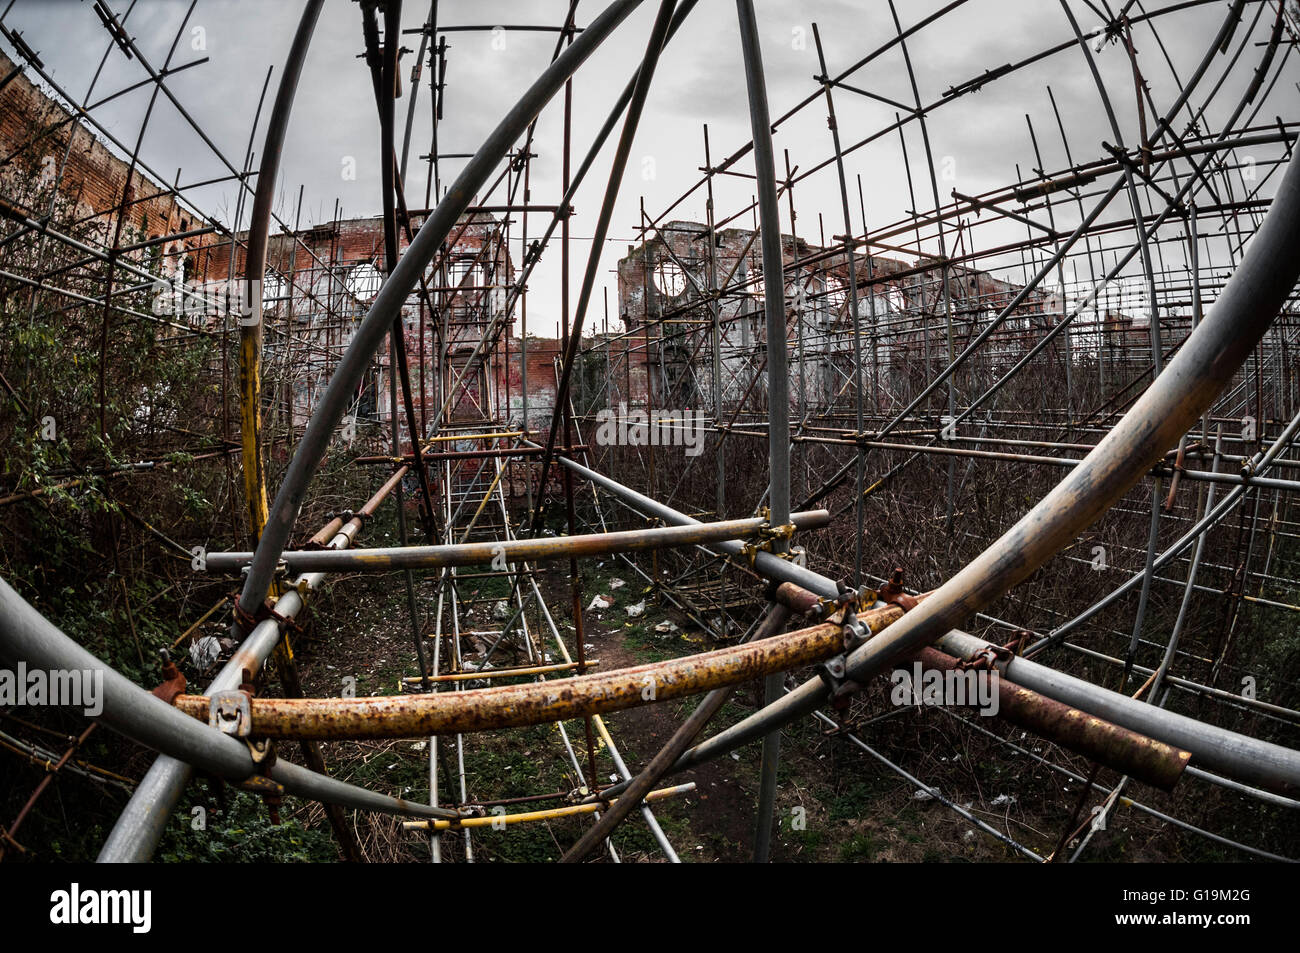 Lots of scaffolding supporting structure inside Abandoned building - Stock Image